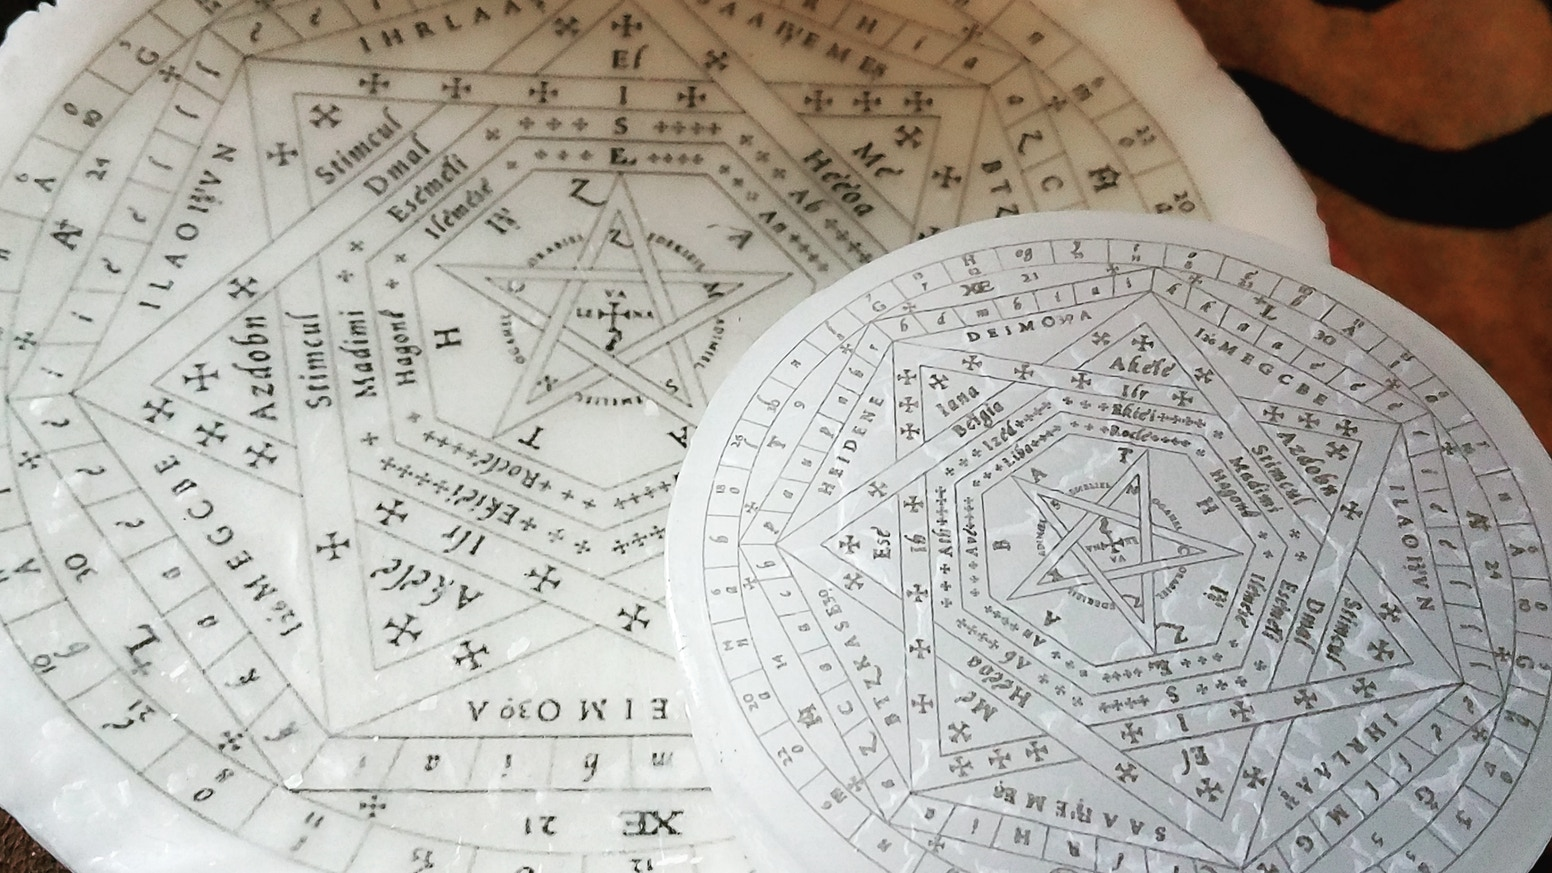 Tools for Angelic Golden Dawn style Enochian Magick, based on the work of John Dee, Edward Kelley, and later Aleister Crowley